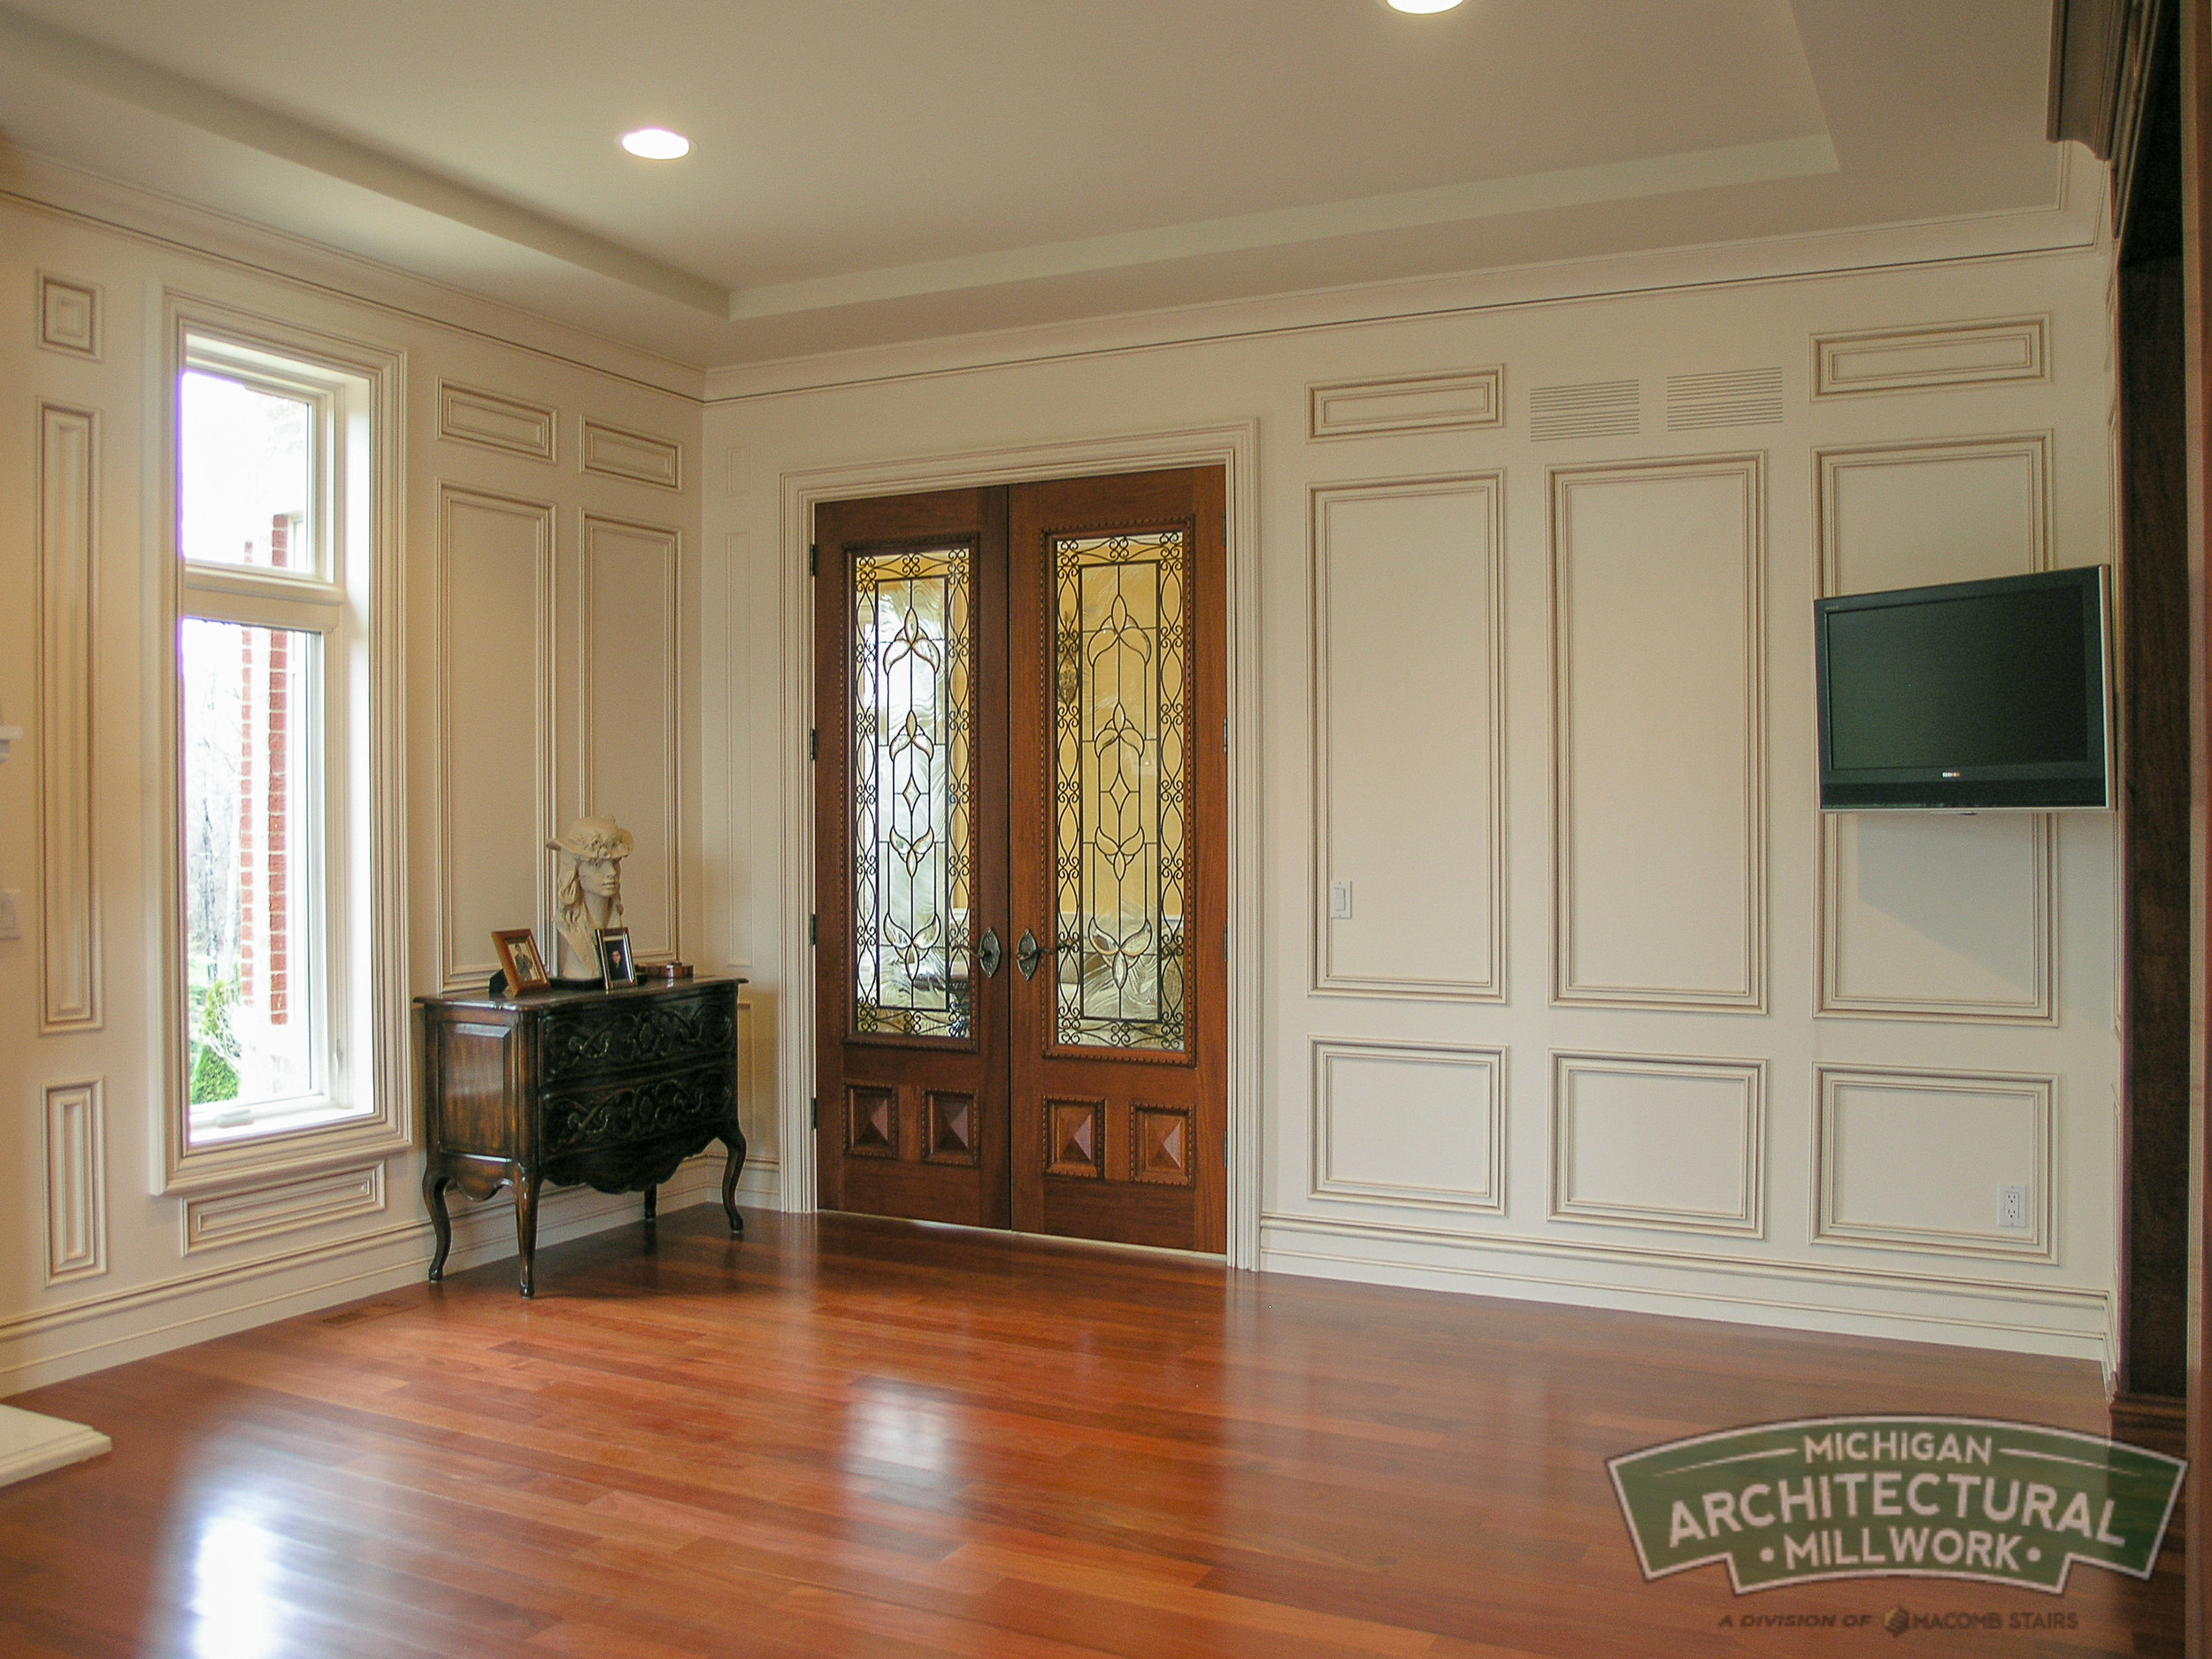 Michigan Architectural Millwork- Moulding and Millwork Photo-205.jpg